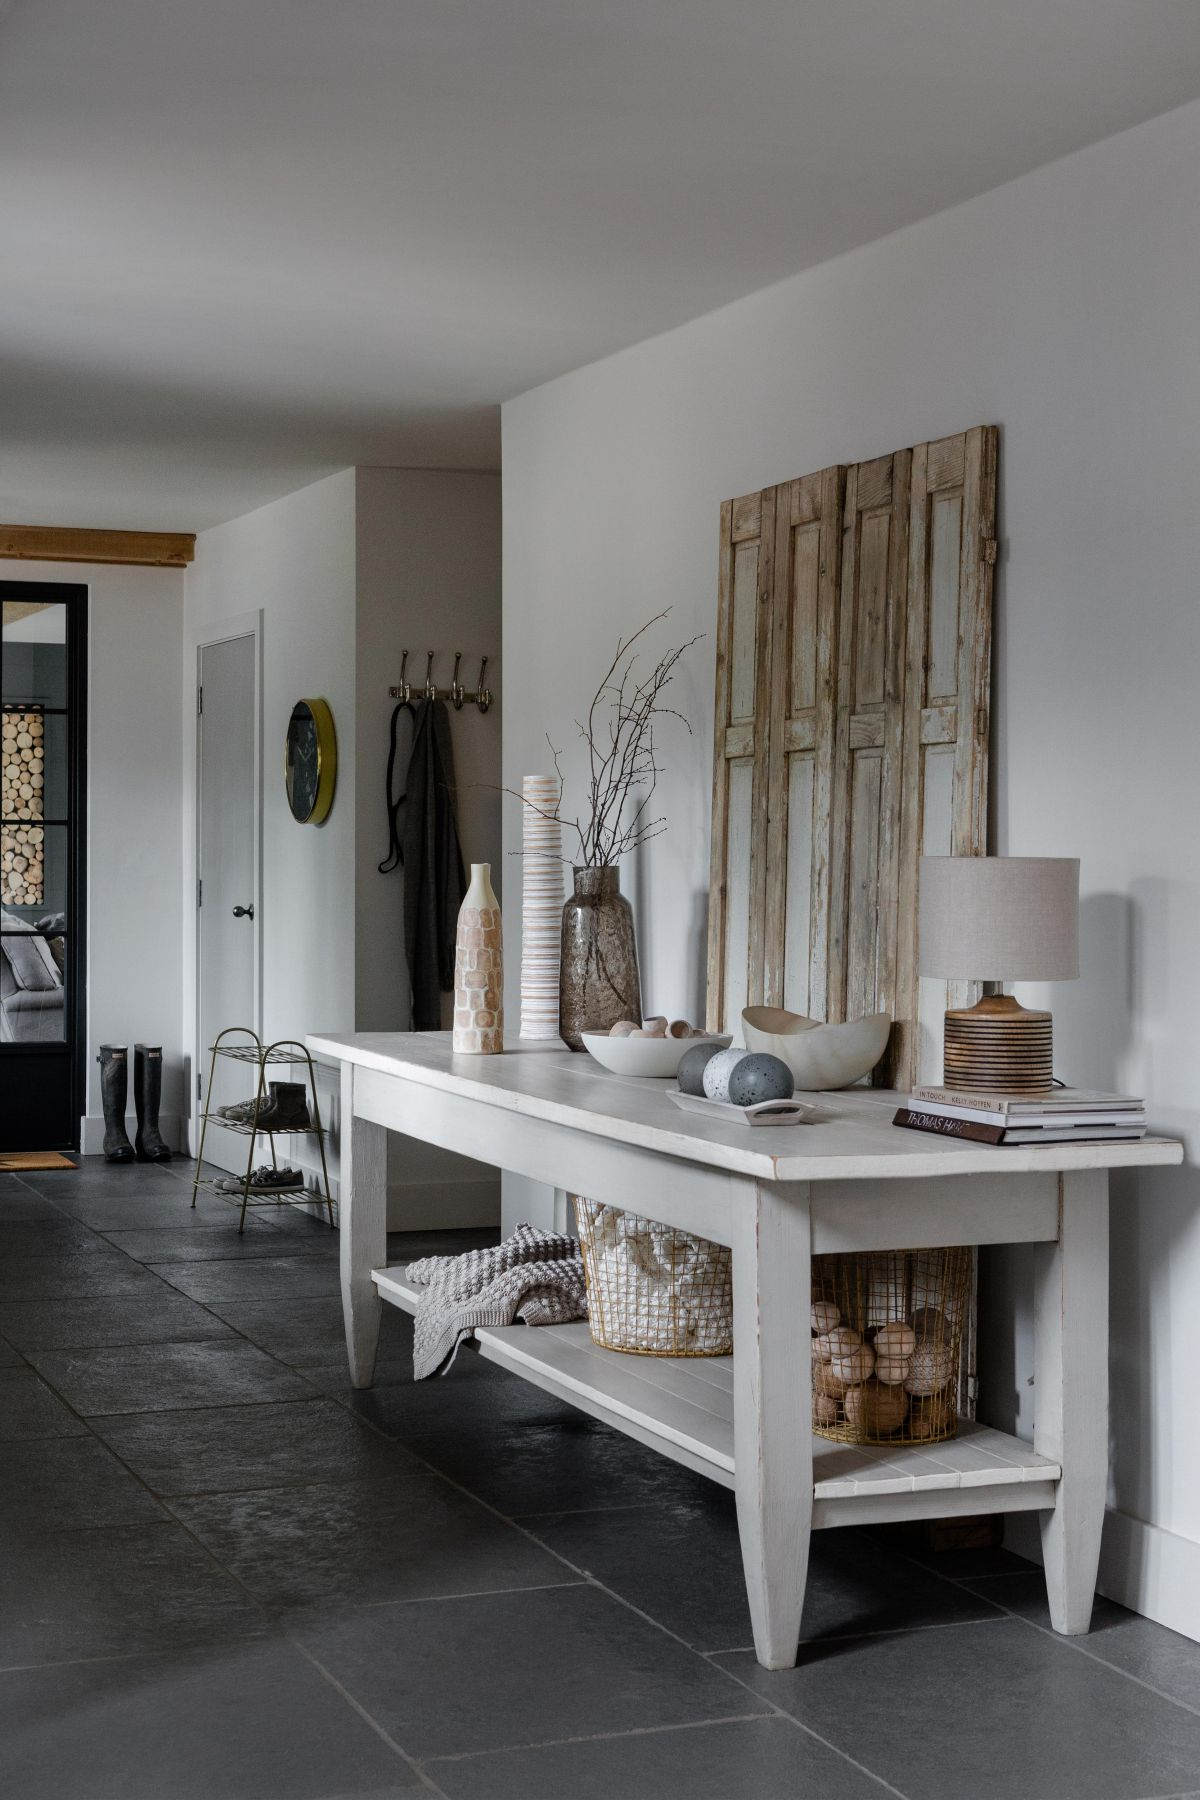 40 Hallway Ideas Stylish Spaces Autumn Updates And Savvy Storage Real Homes